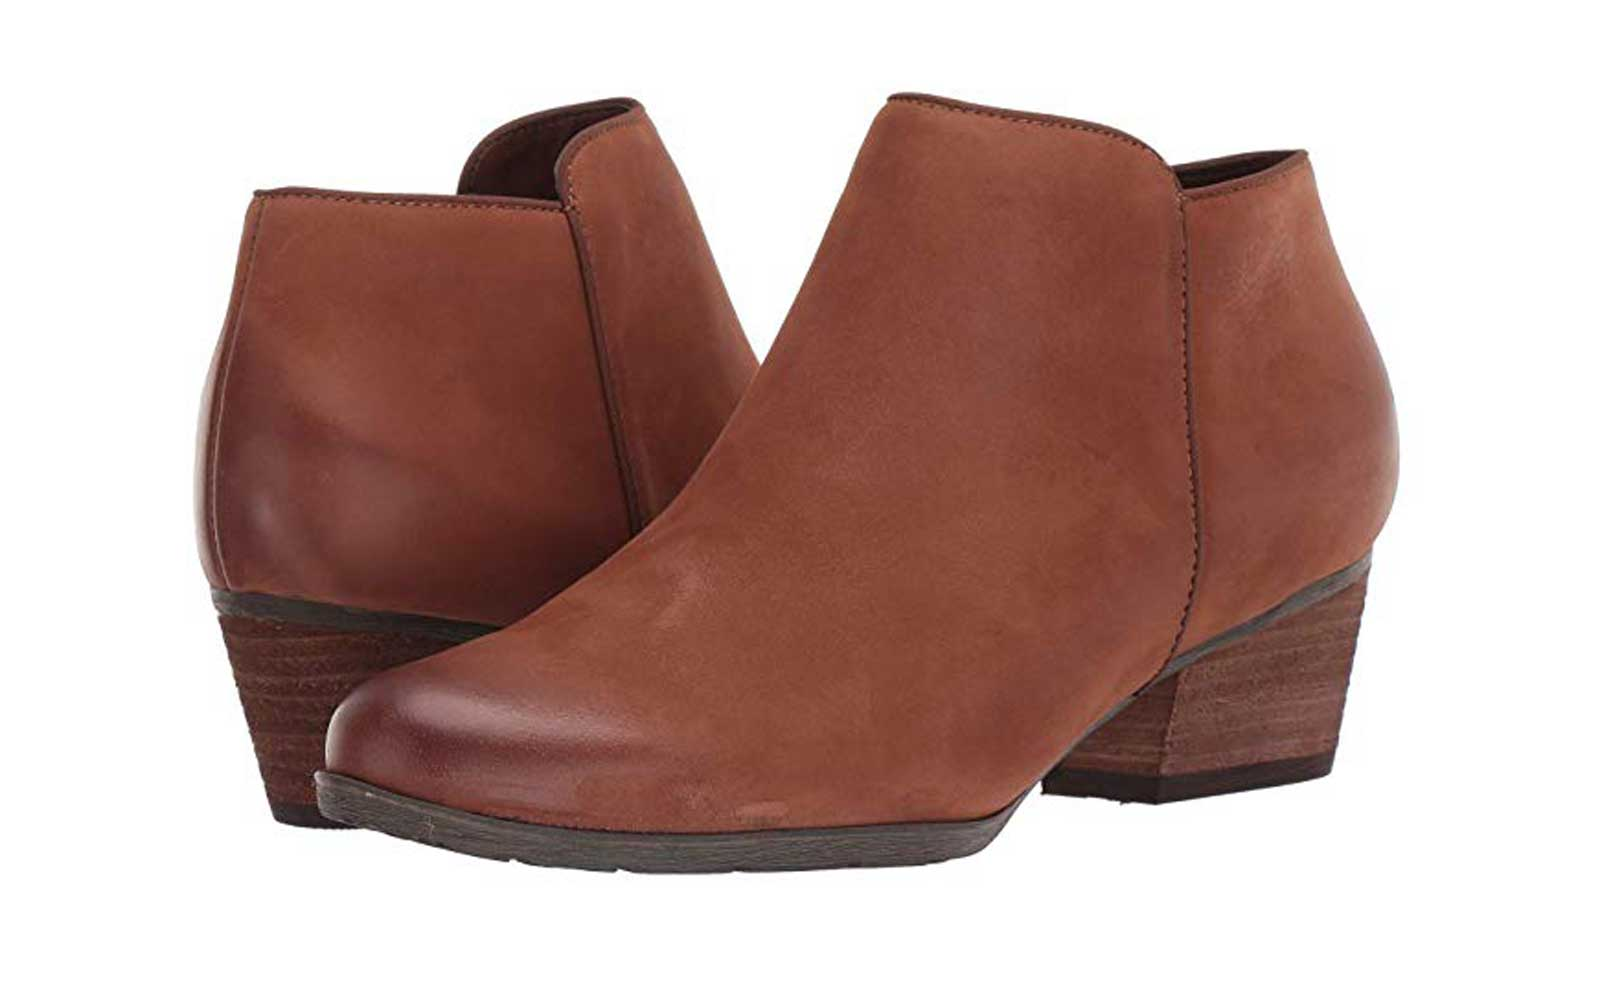 Women's Brown Booties